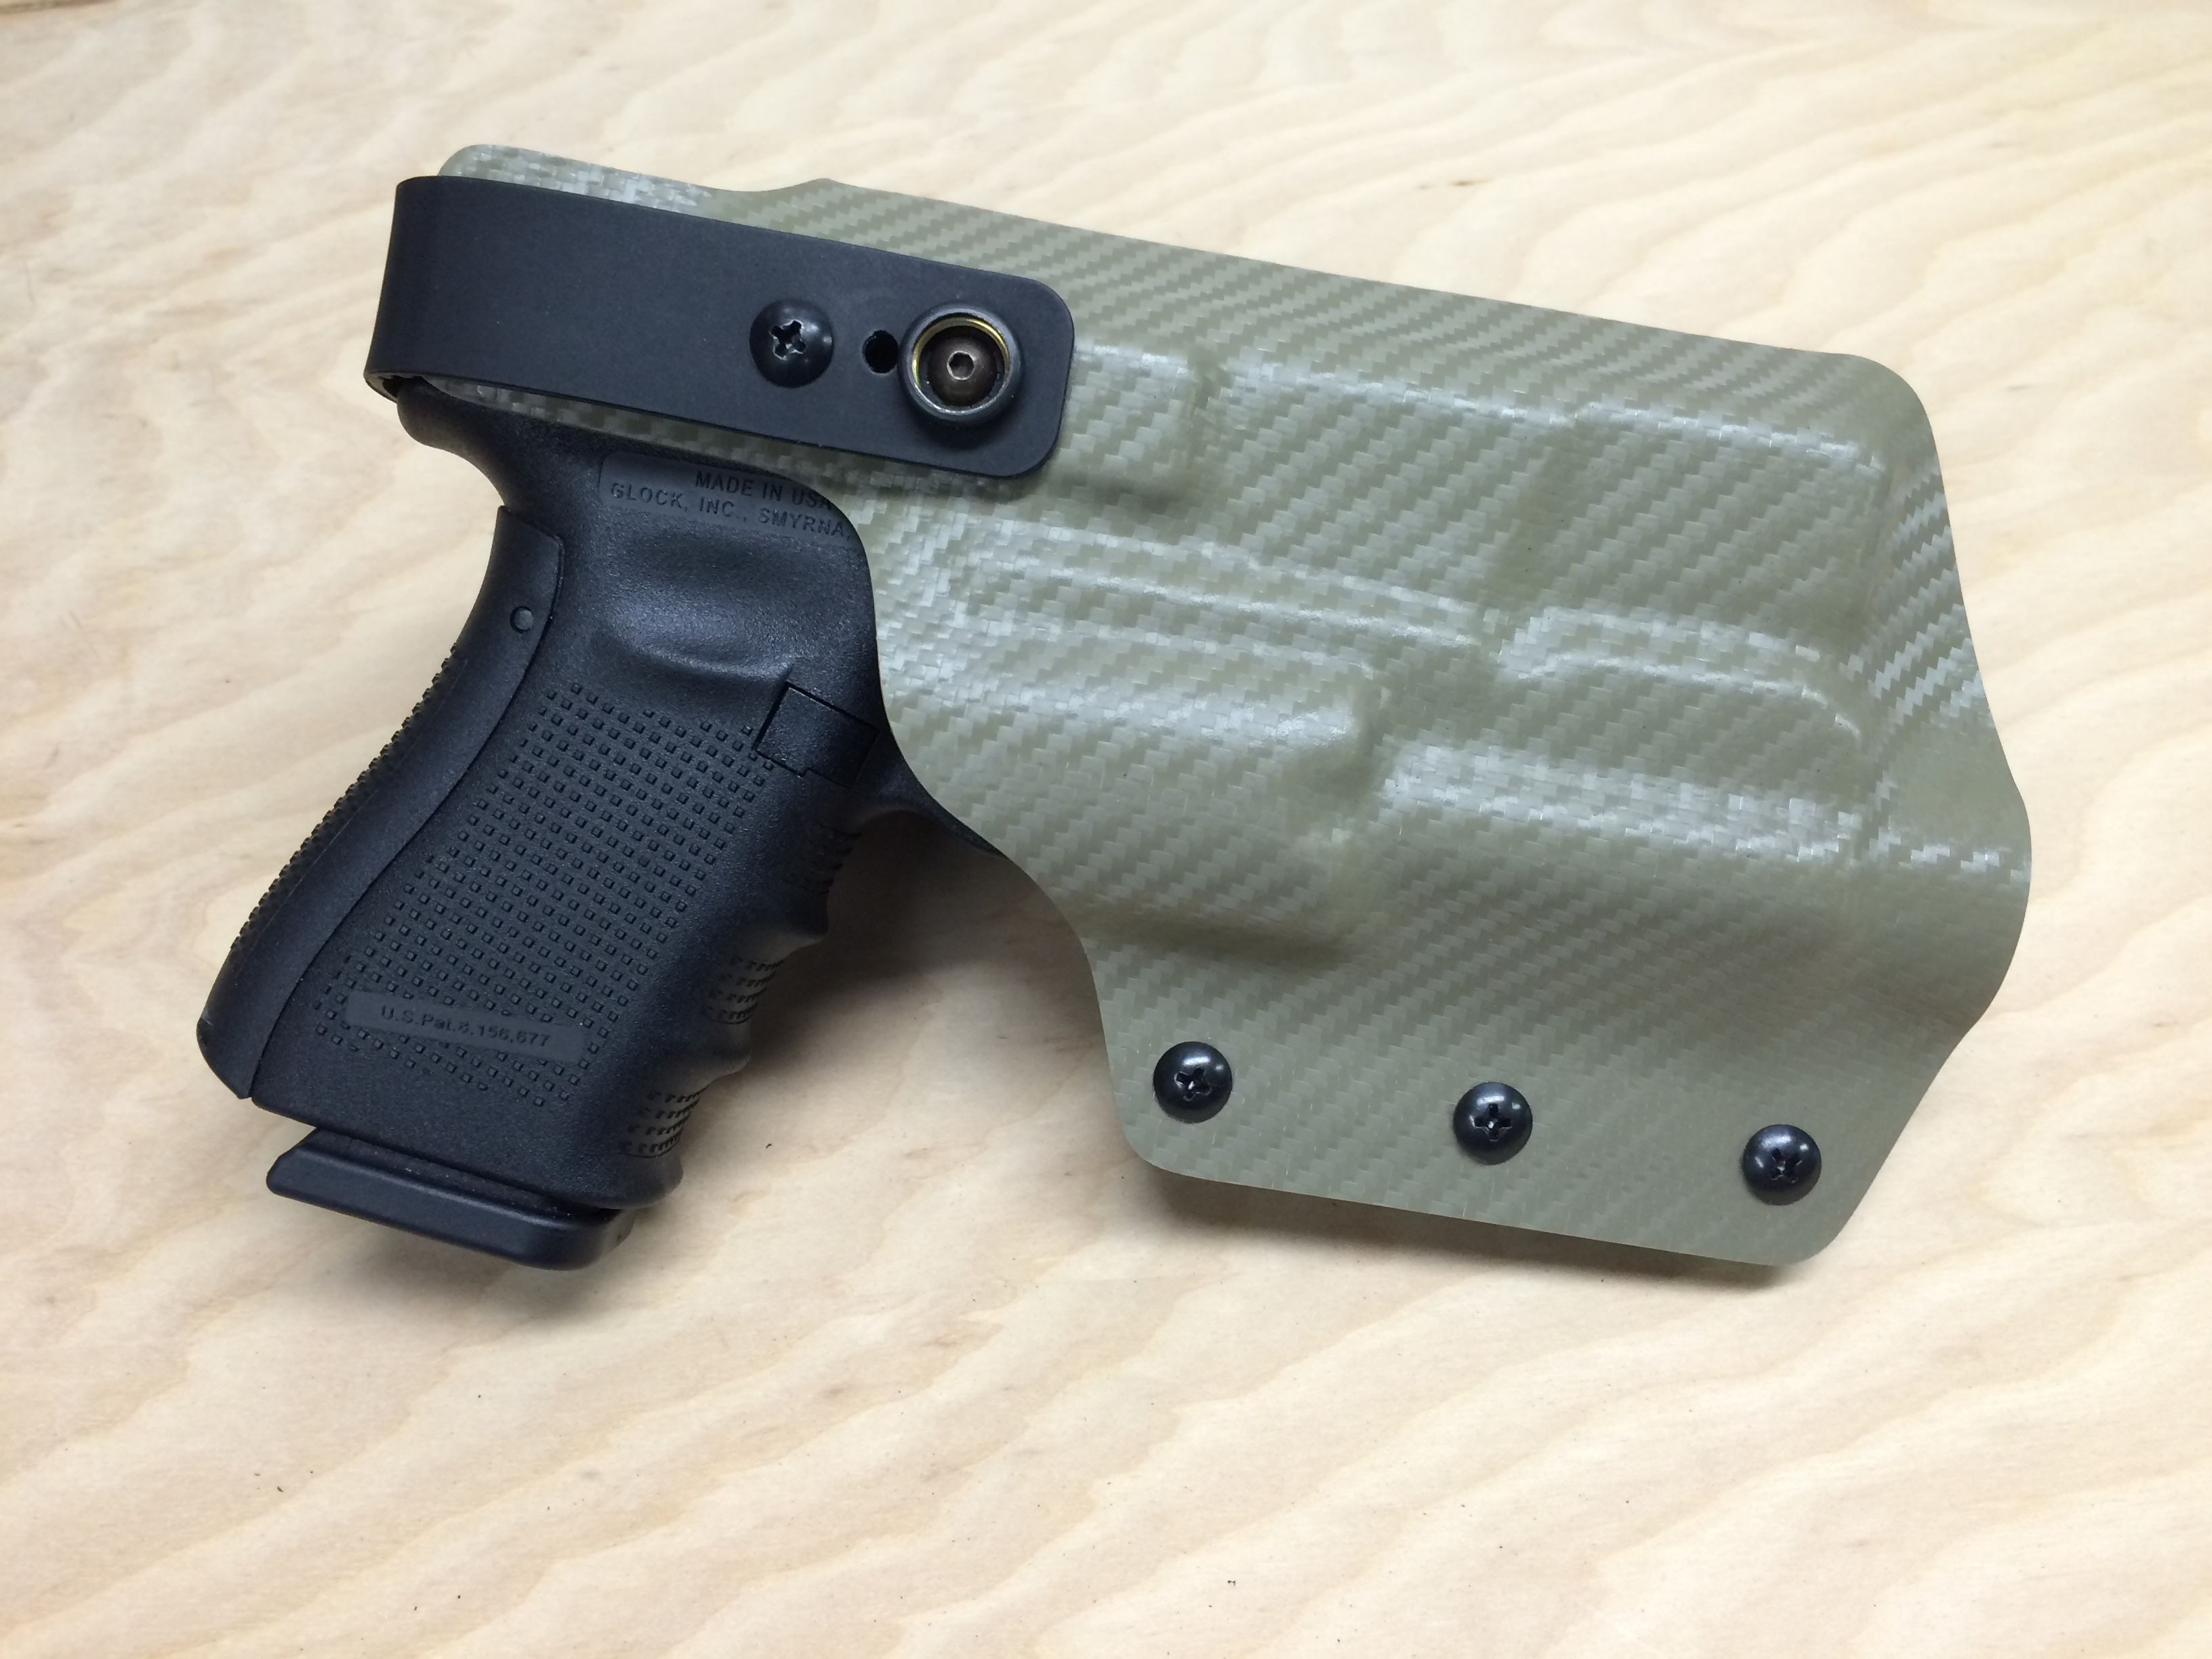 Glock 19 with TLR-2 light/laser  OWB retention holster with